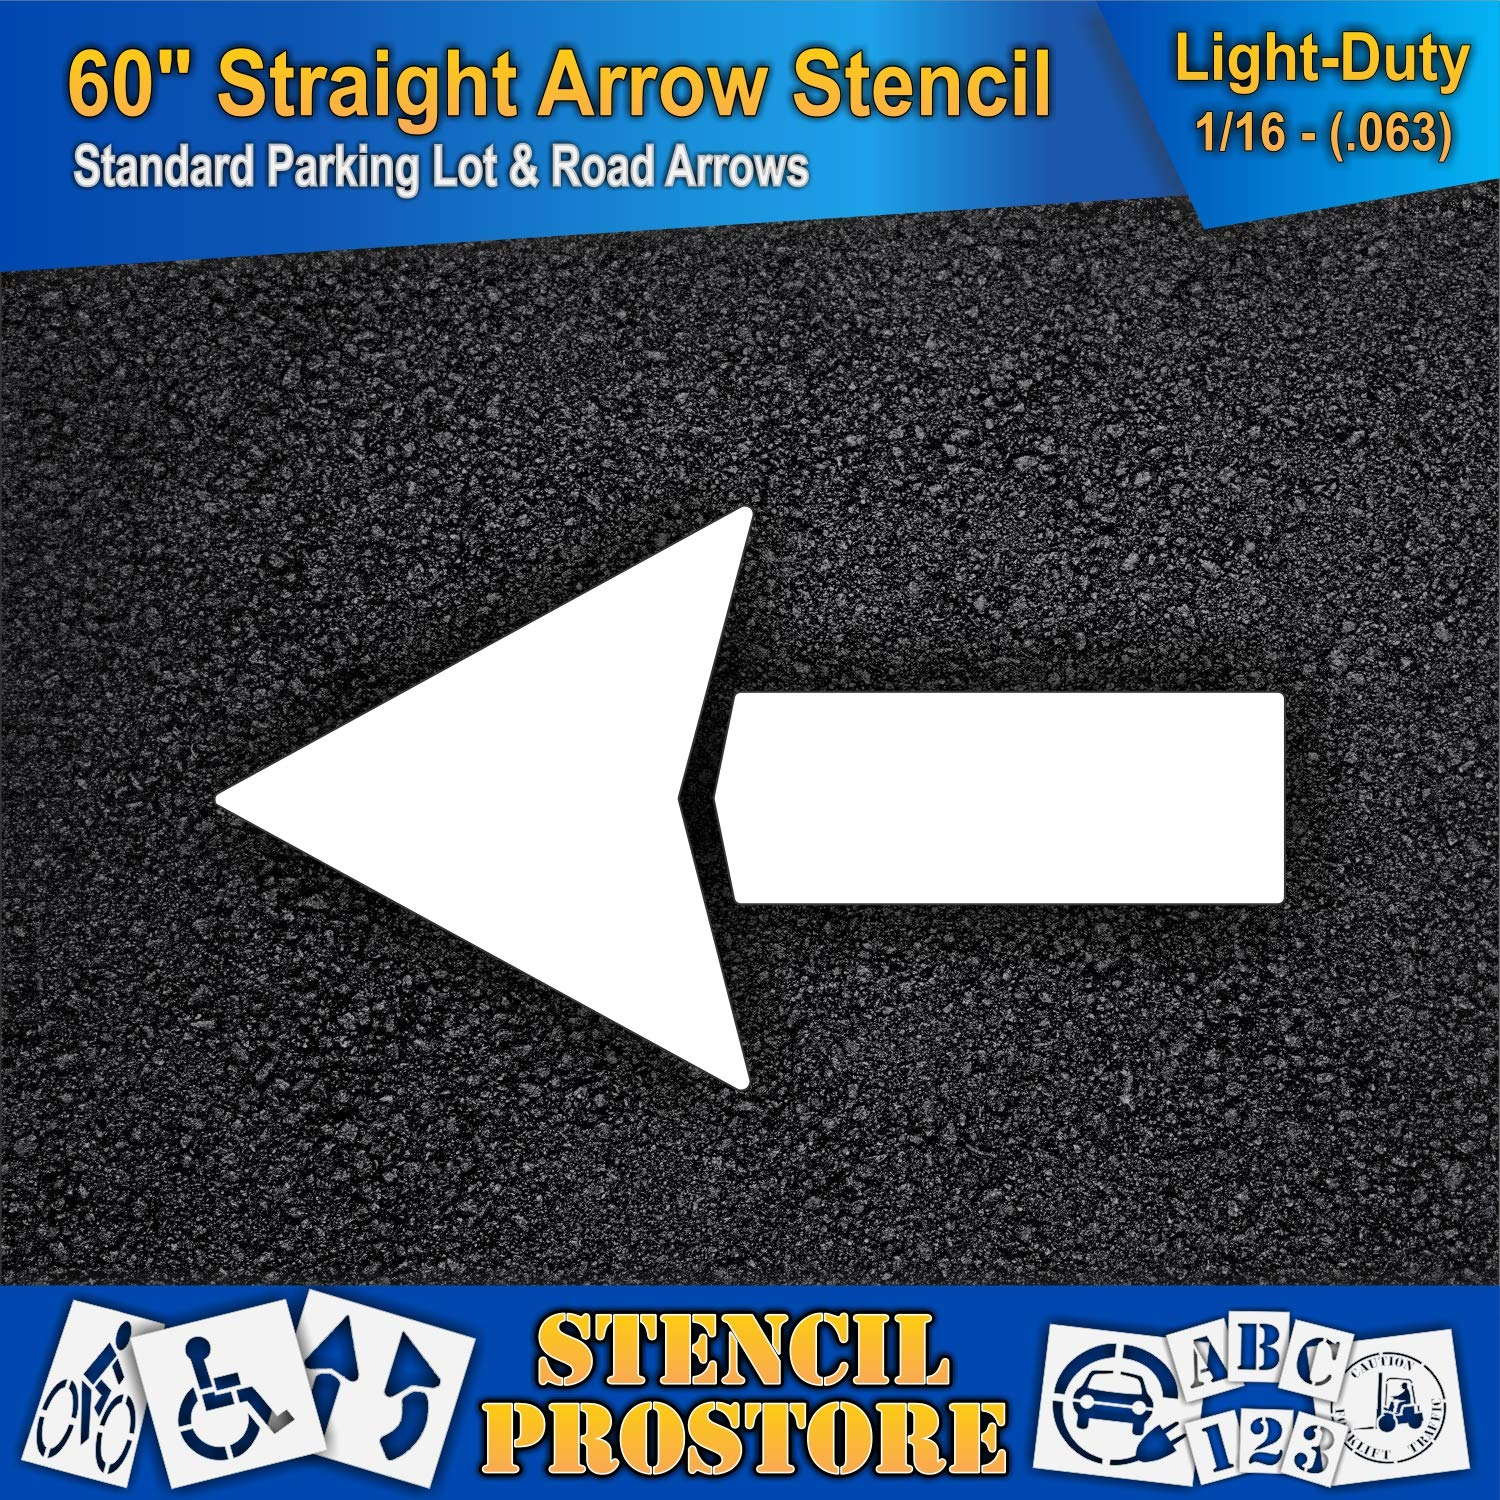 Parking Lot Stencils - 60 inch - Straight Arrow Stencil - 60'' x 33'' with 12'' Wide Tail Stroke - 1/16'' (63 mil) - Light-Duty by Stencil ProStore